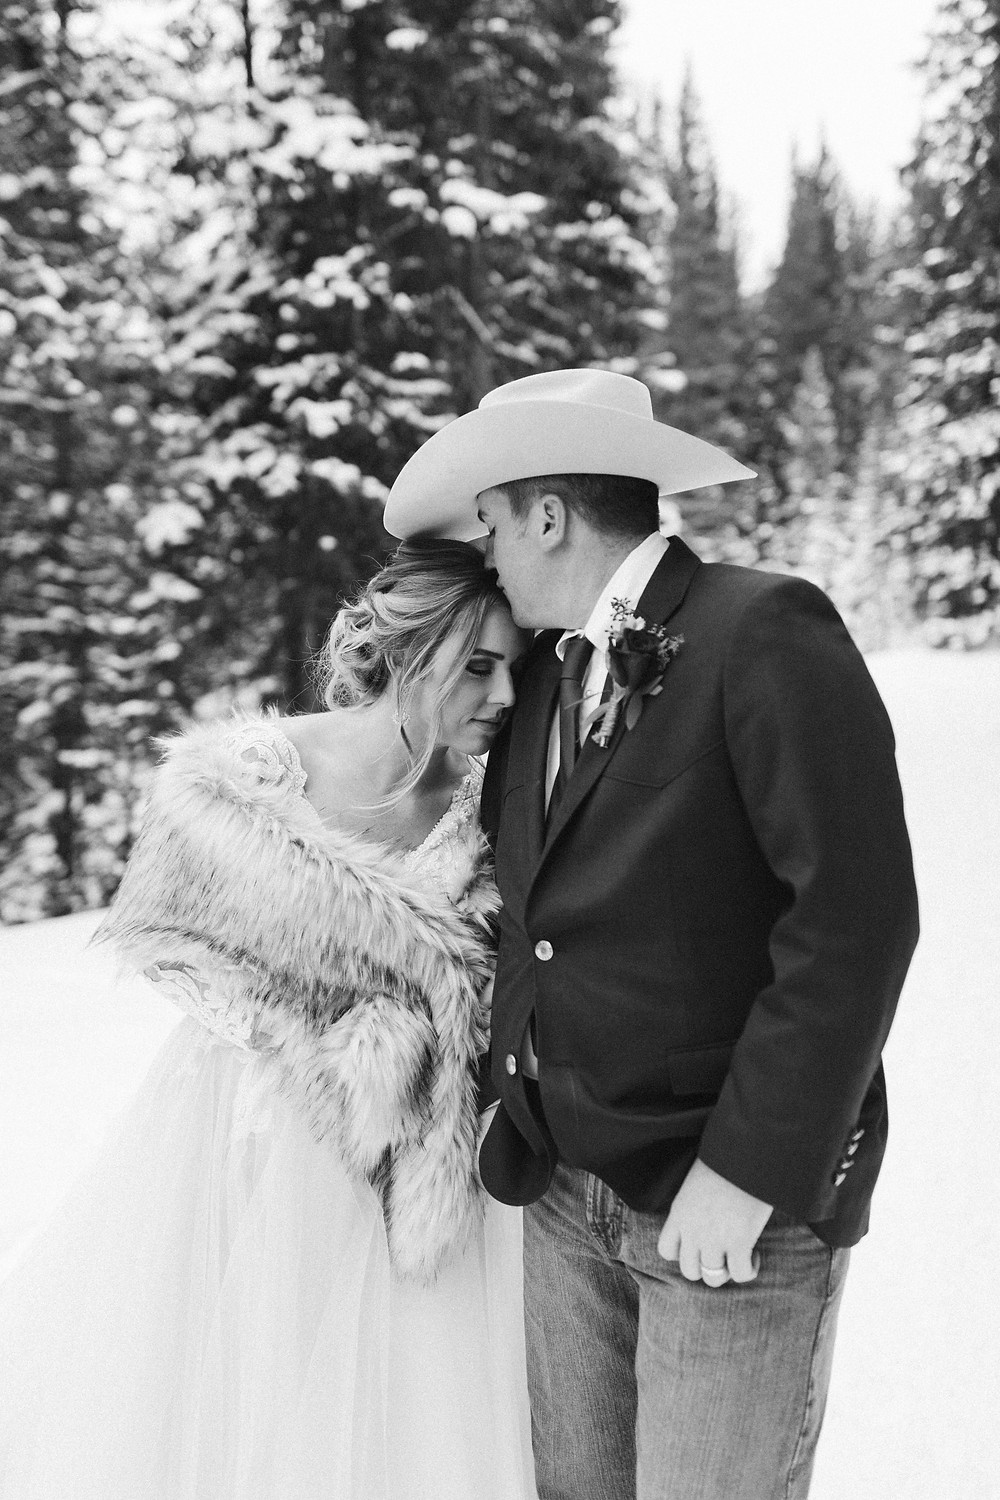 Breckenridge Winter Wedding - The Lodge at Breckenridge Wedding